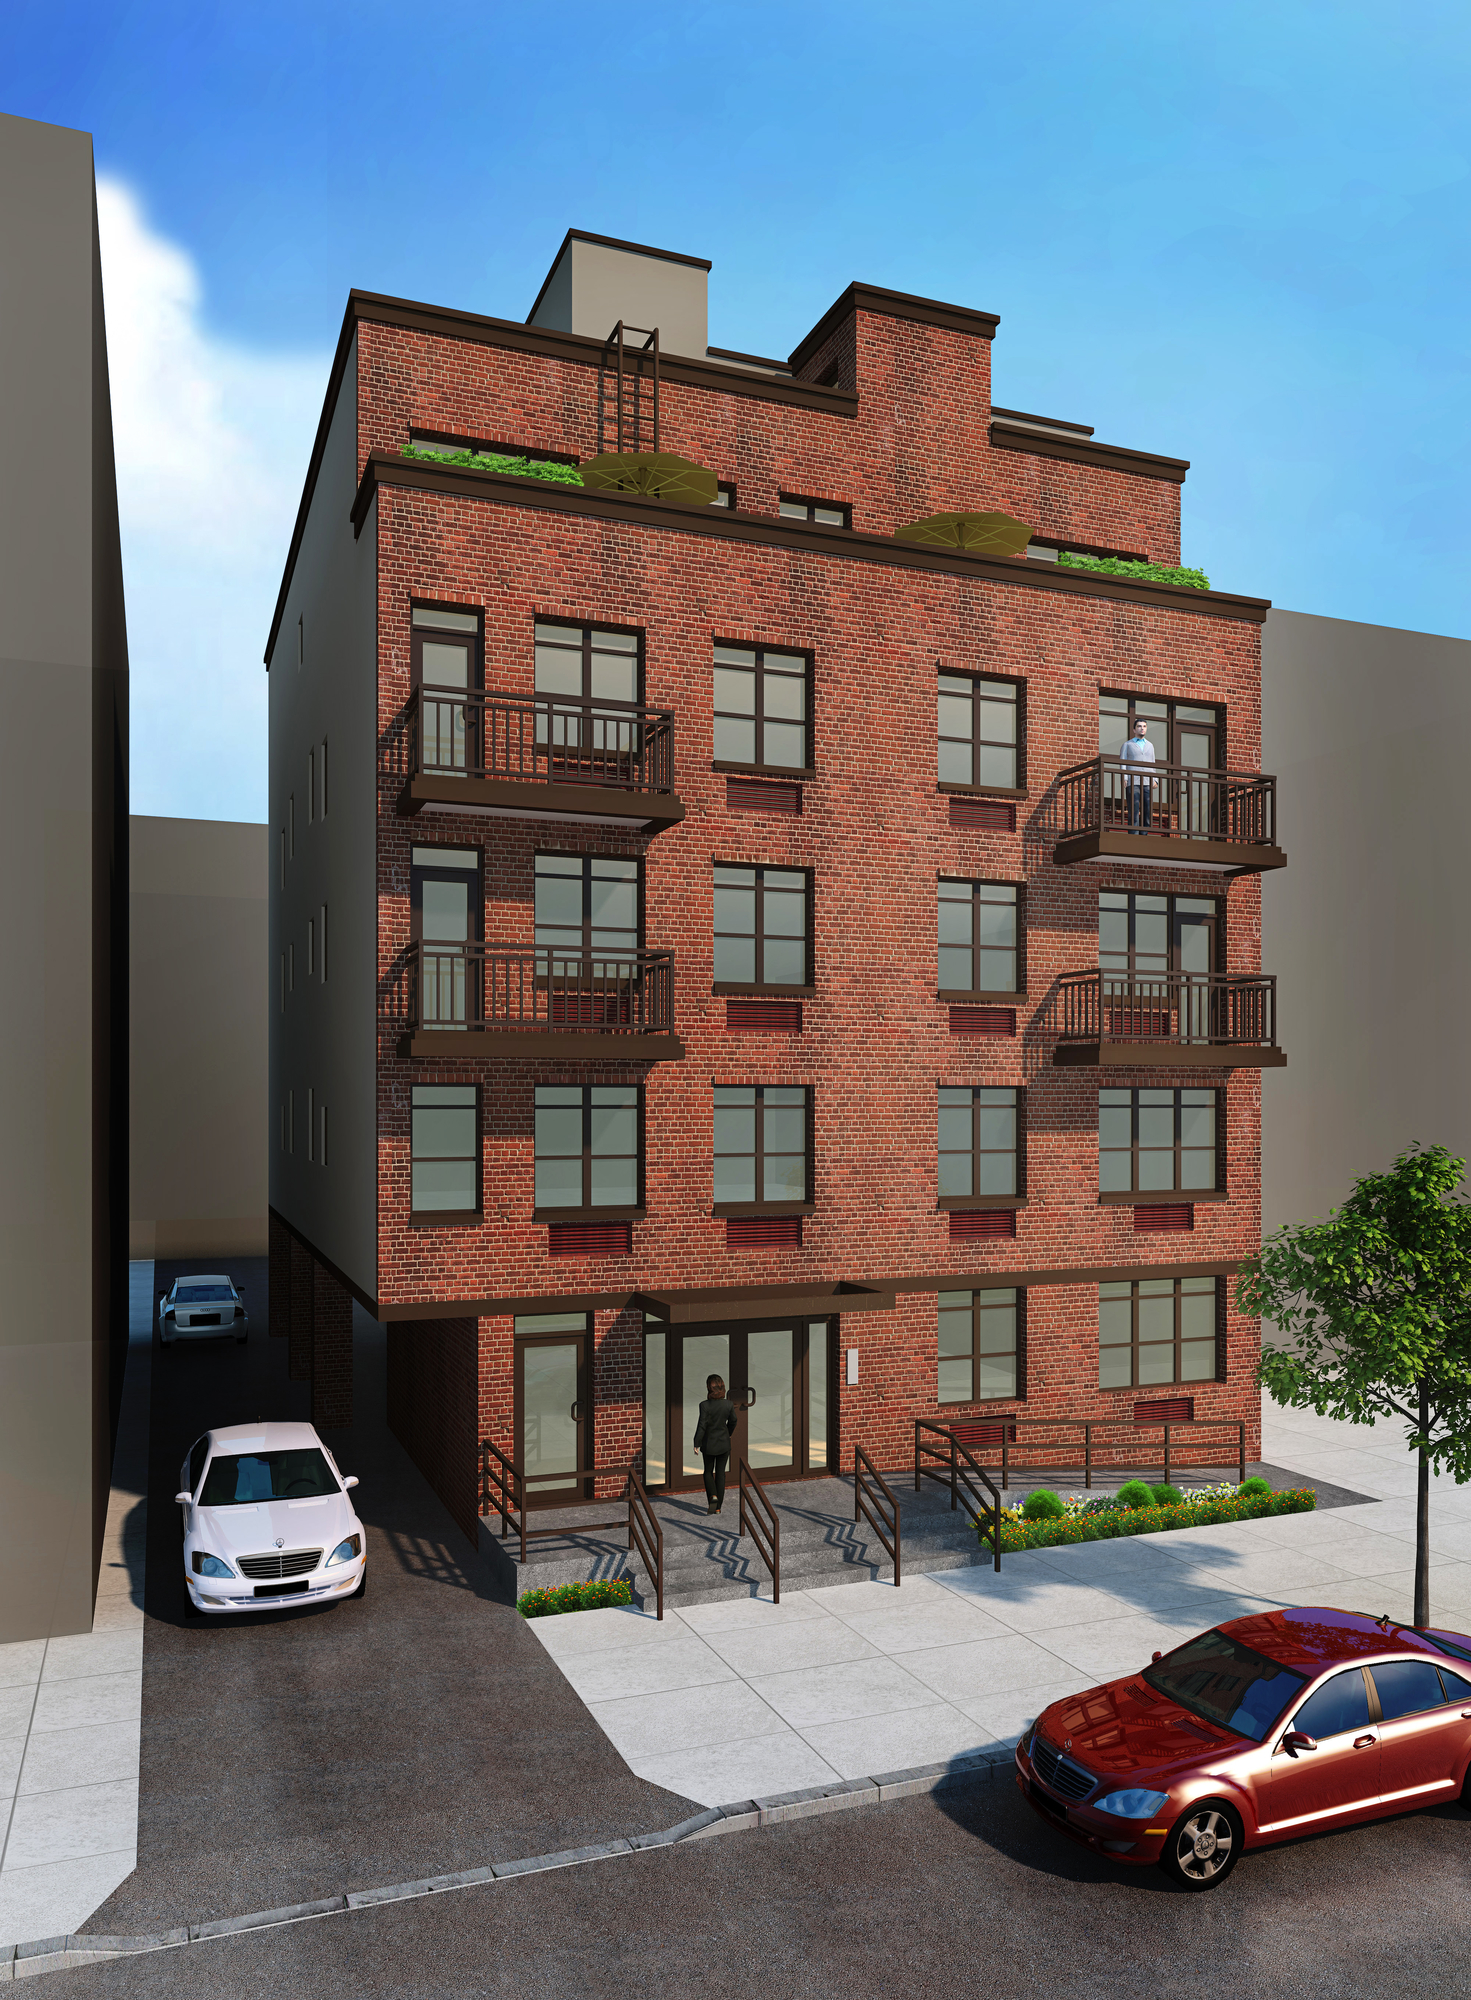 Construction Wrapping On Five Story 16 Unit Condominium